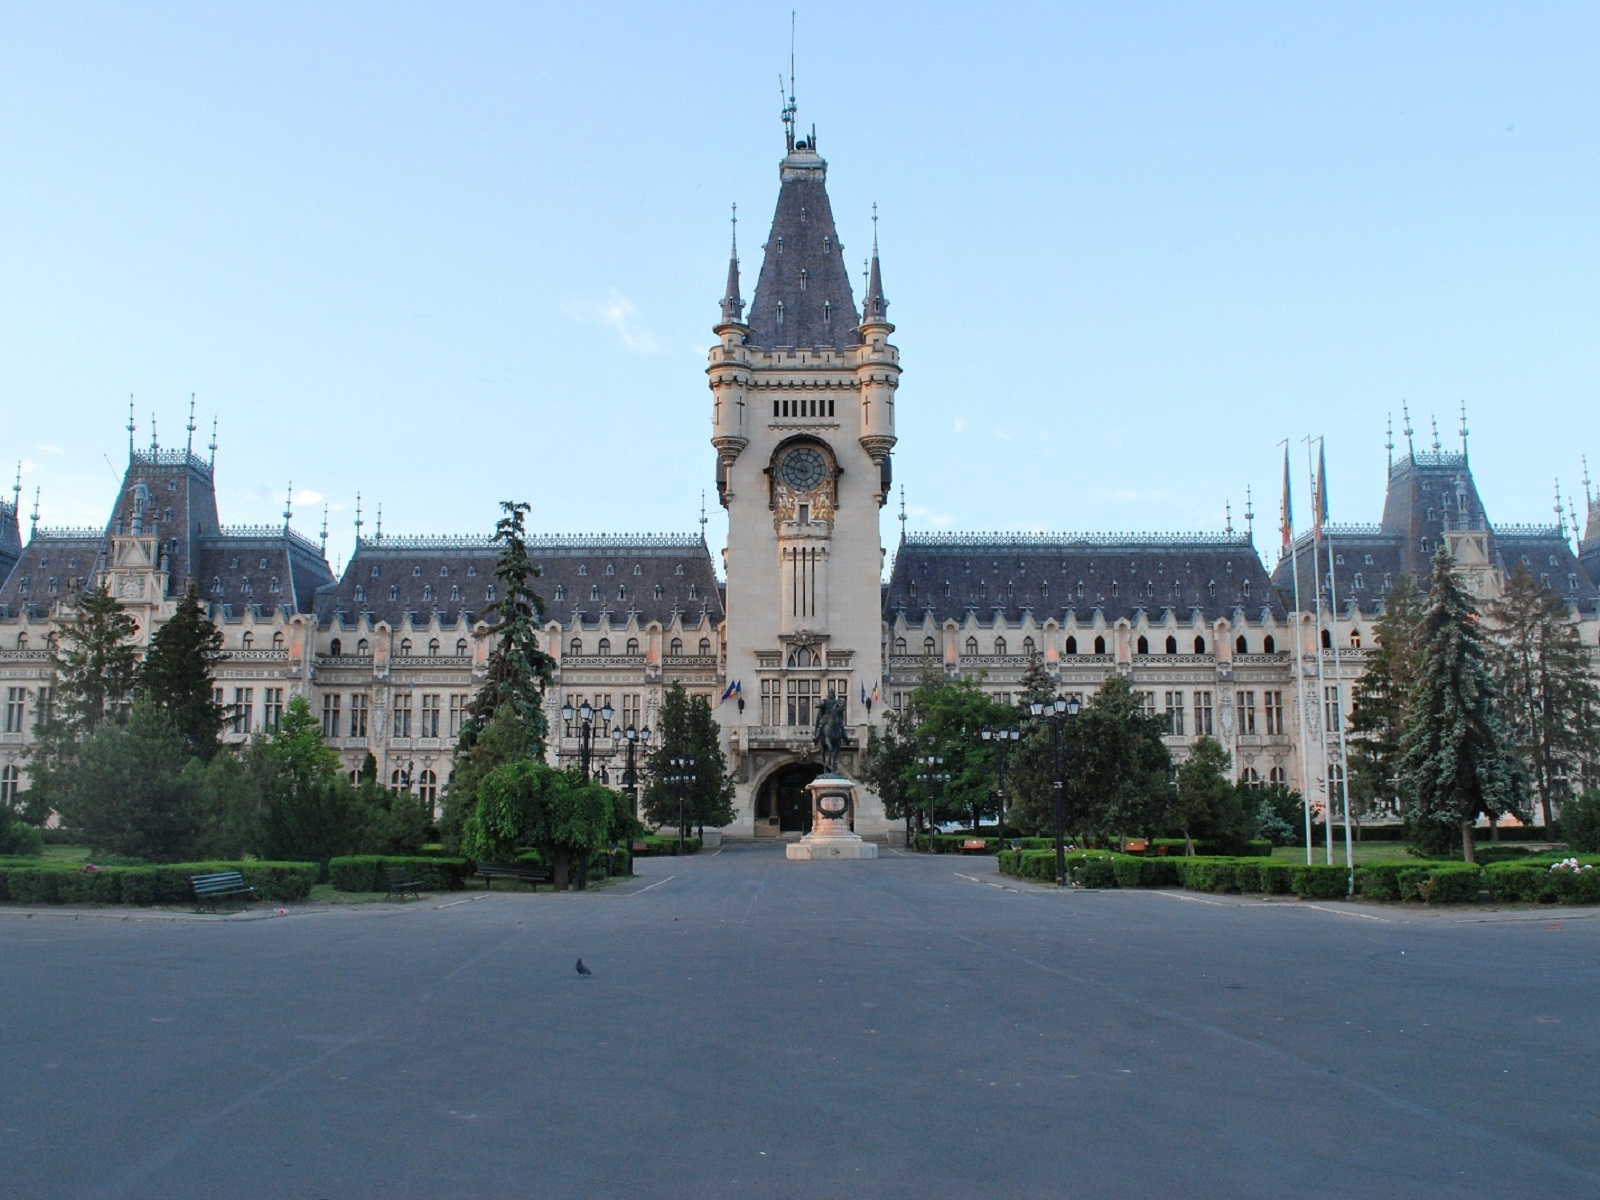 Iasi architecture, Romania, Palace of Culture frontal view